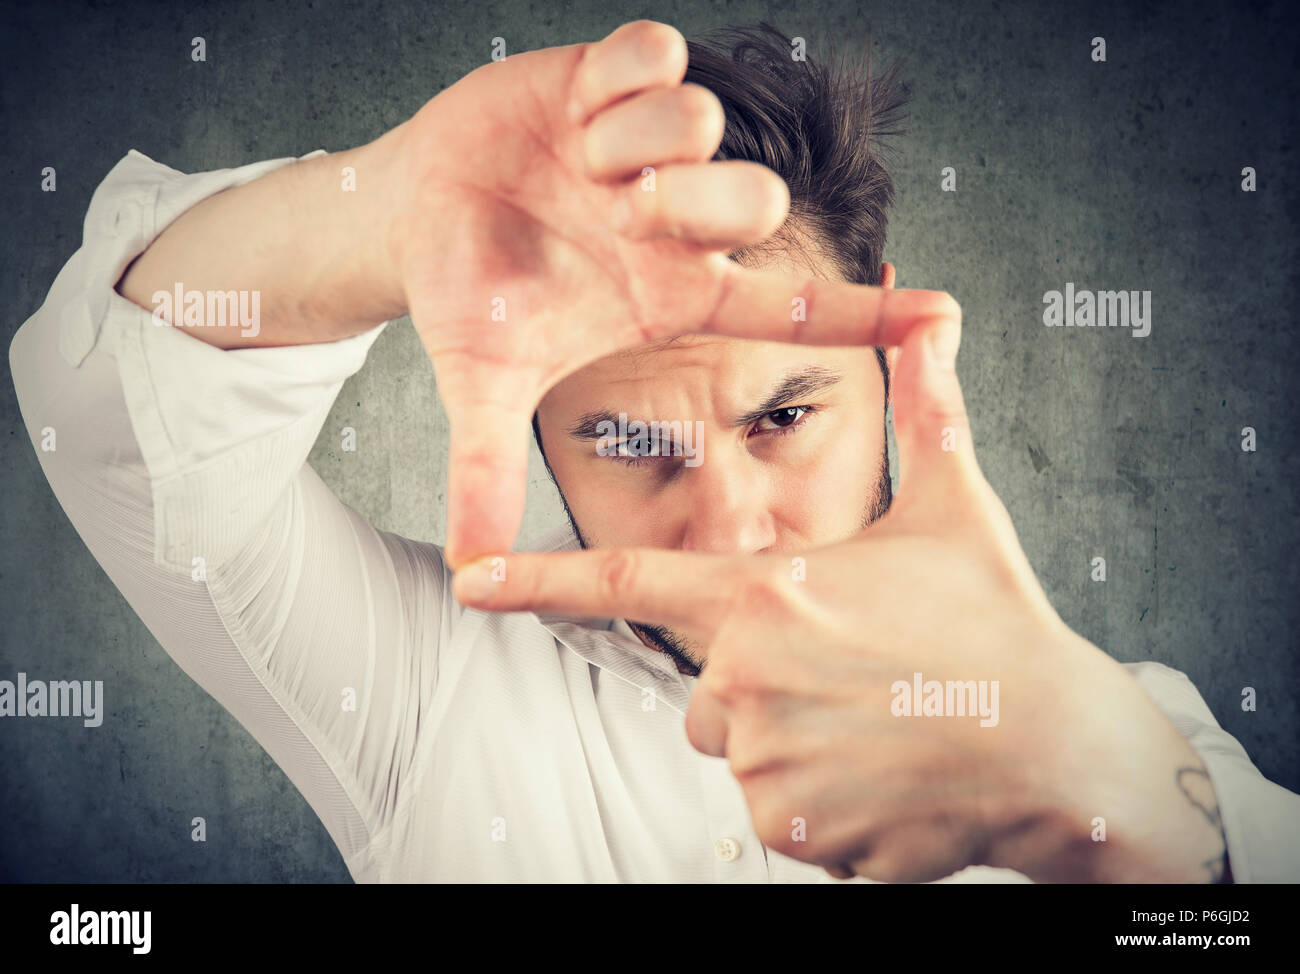 Young man making a frame with fingers hands and looking through limits at camera on gray background - Stock Image